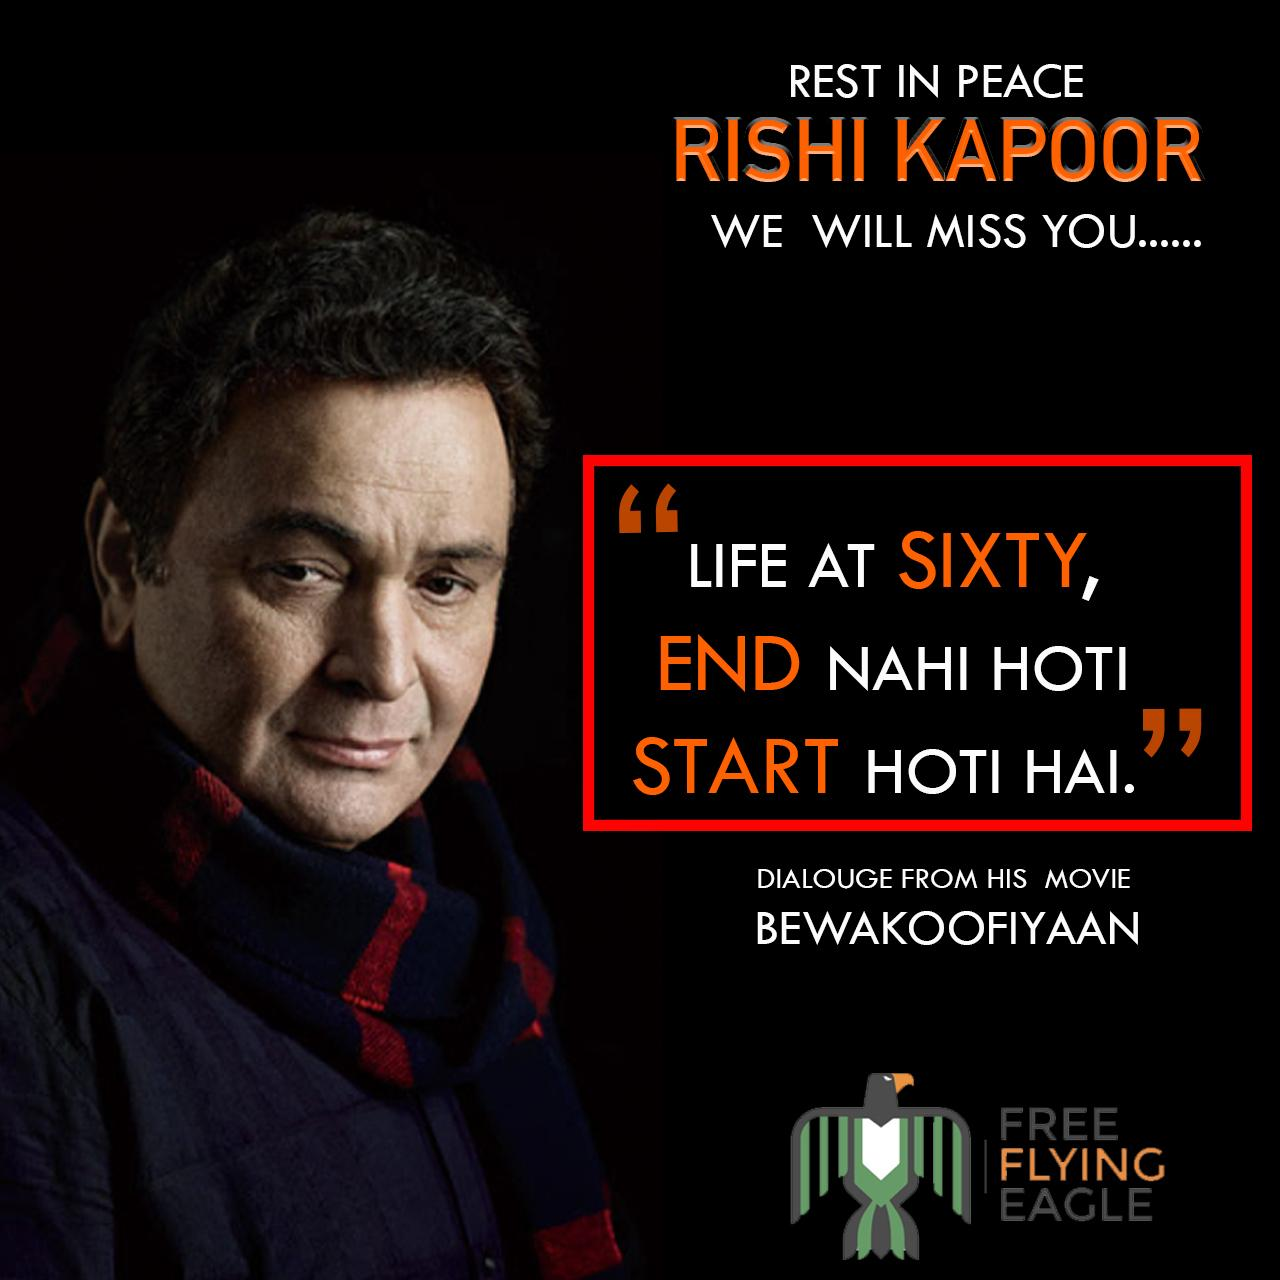 Rishi Kapoor Sir: One more gem and million more tears